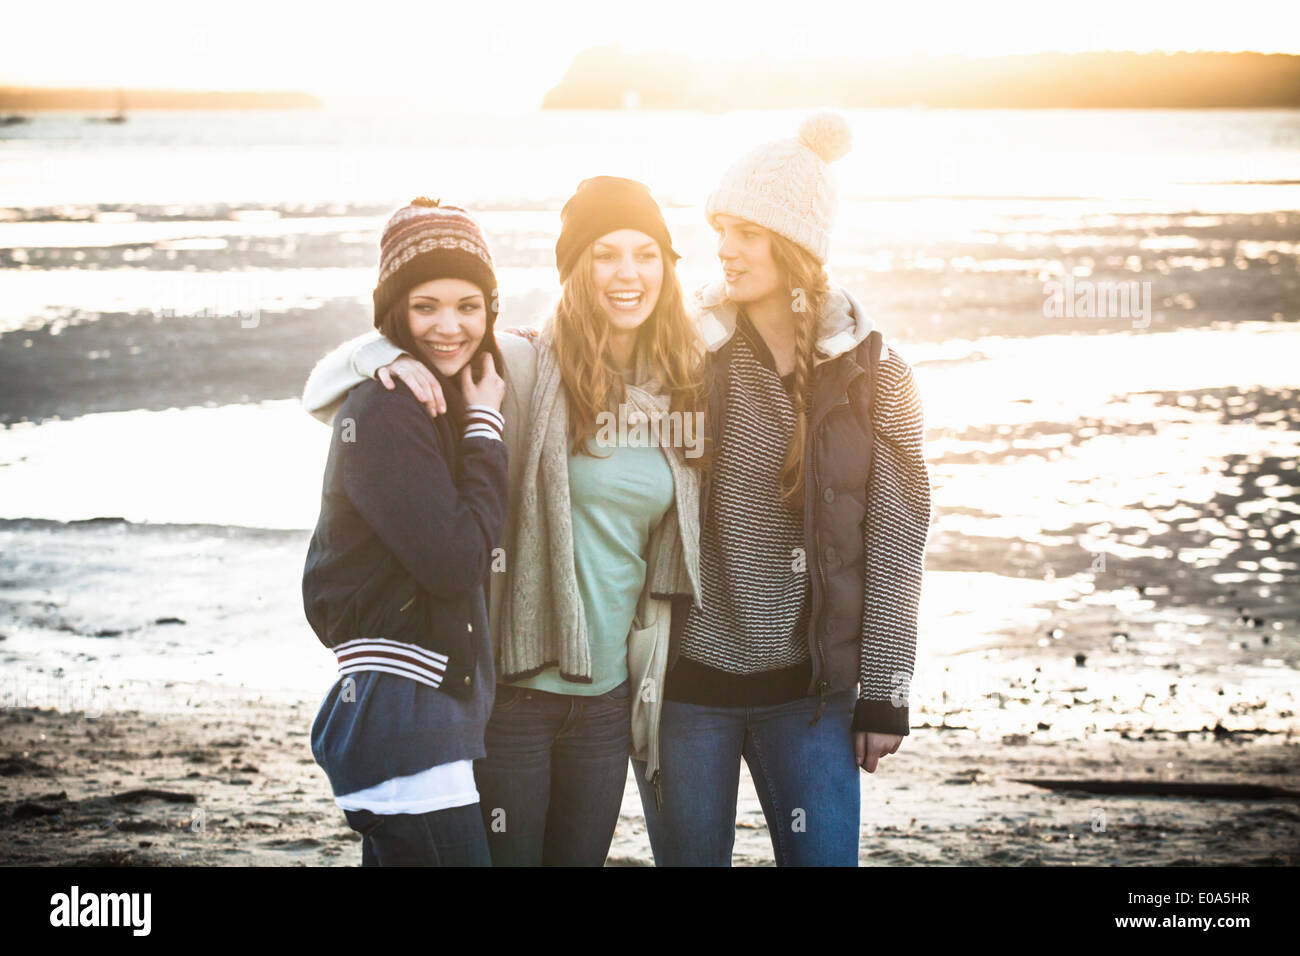 Portrait of three young adult women on the beach - Stock Image